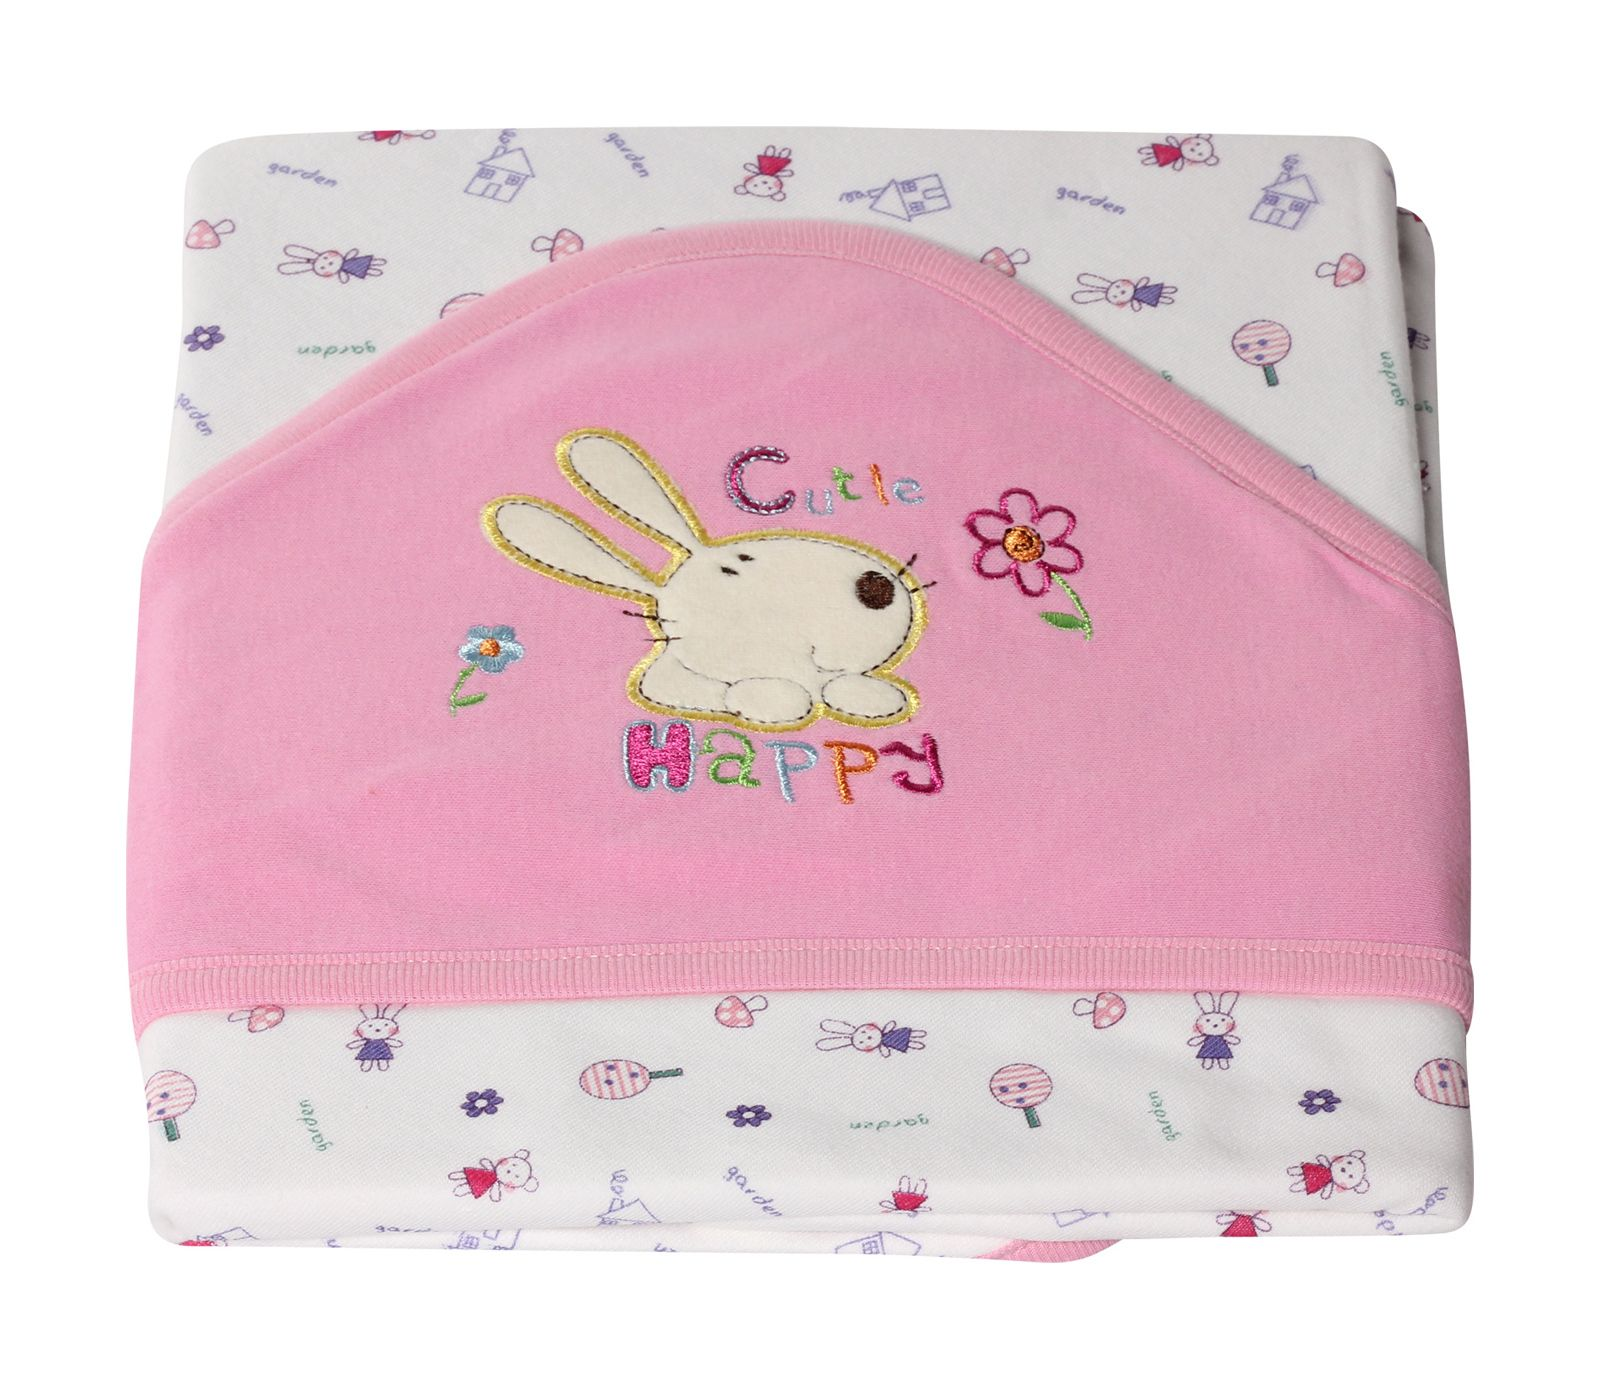 Carters Baby Blanket Price In India On 14 April 2013 In Mumbai